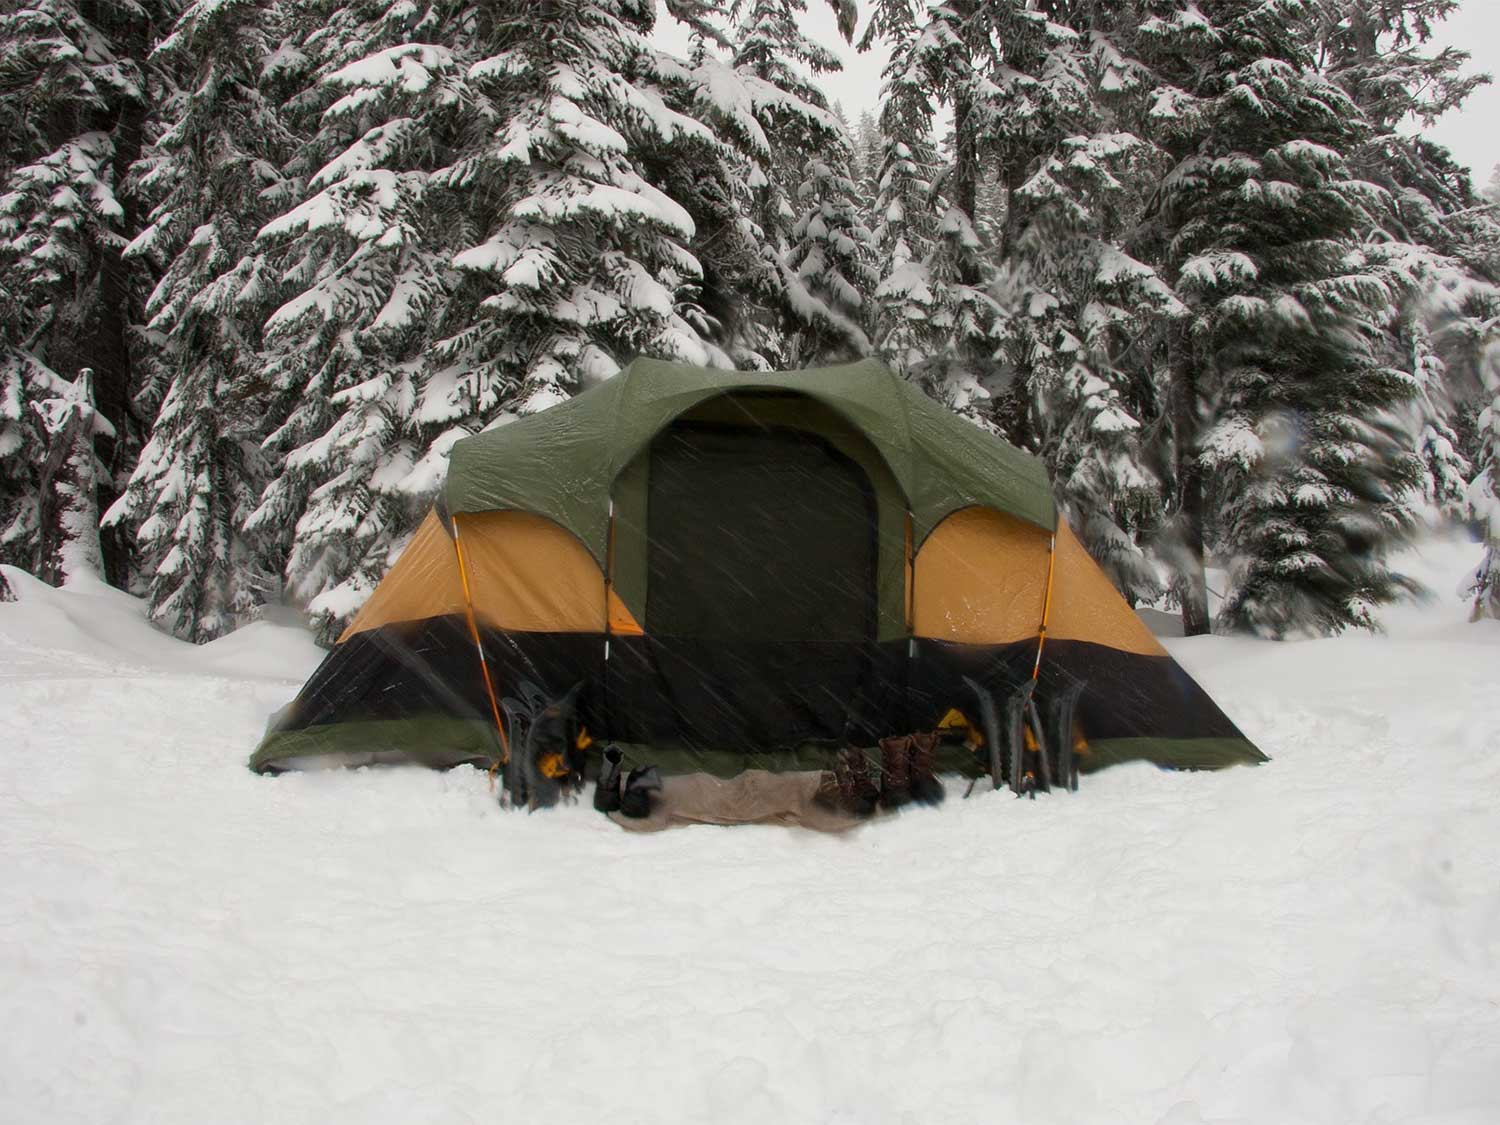 A single camping tent in the snow next to a tree line.